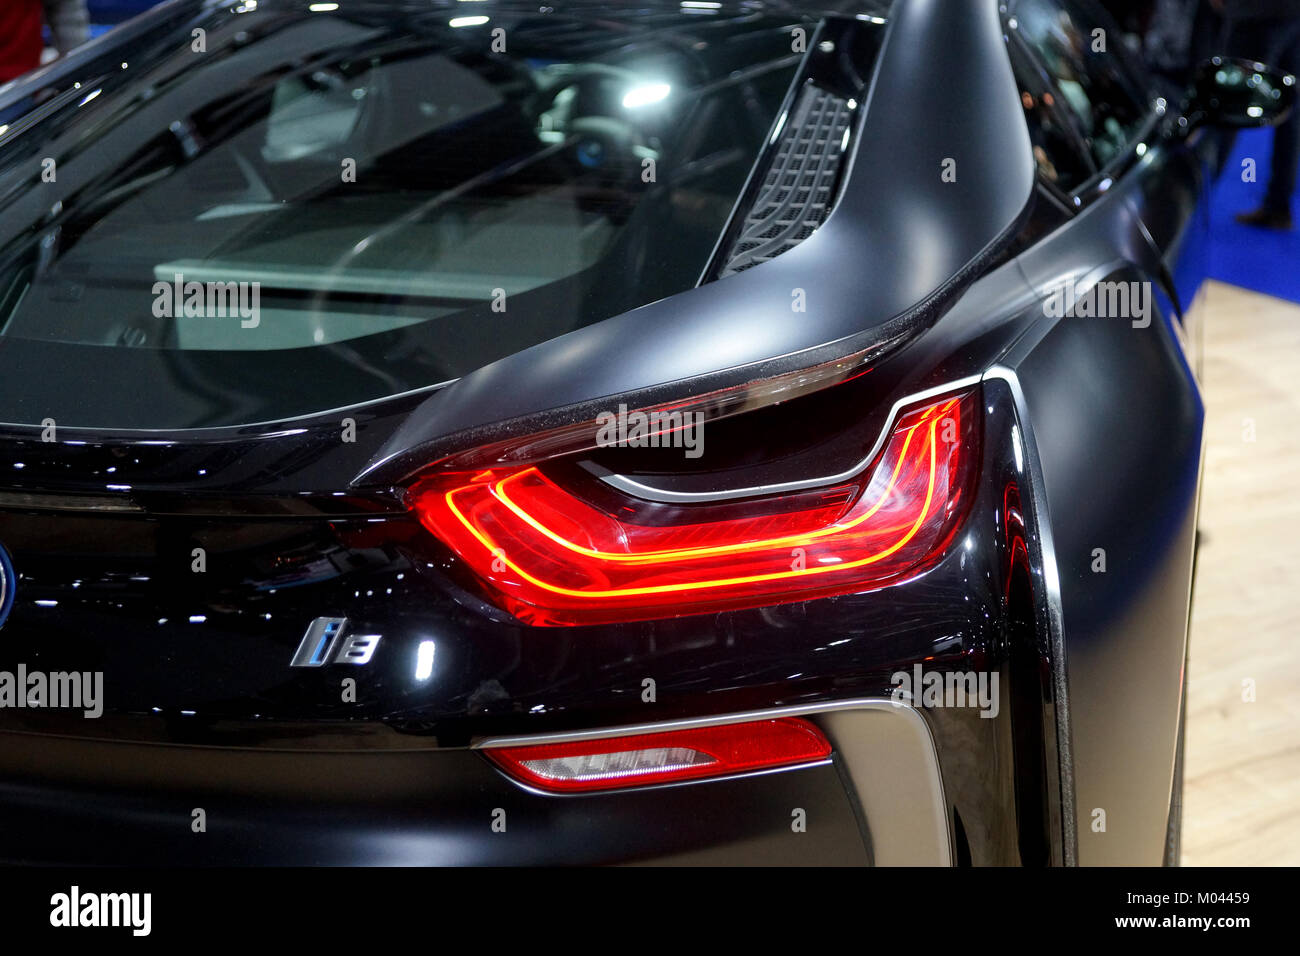 Montreal Canada 18th Jan 2018 Rear Tail Section Of The Bmw I8